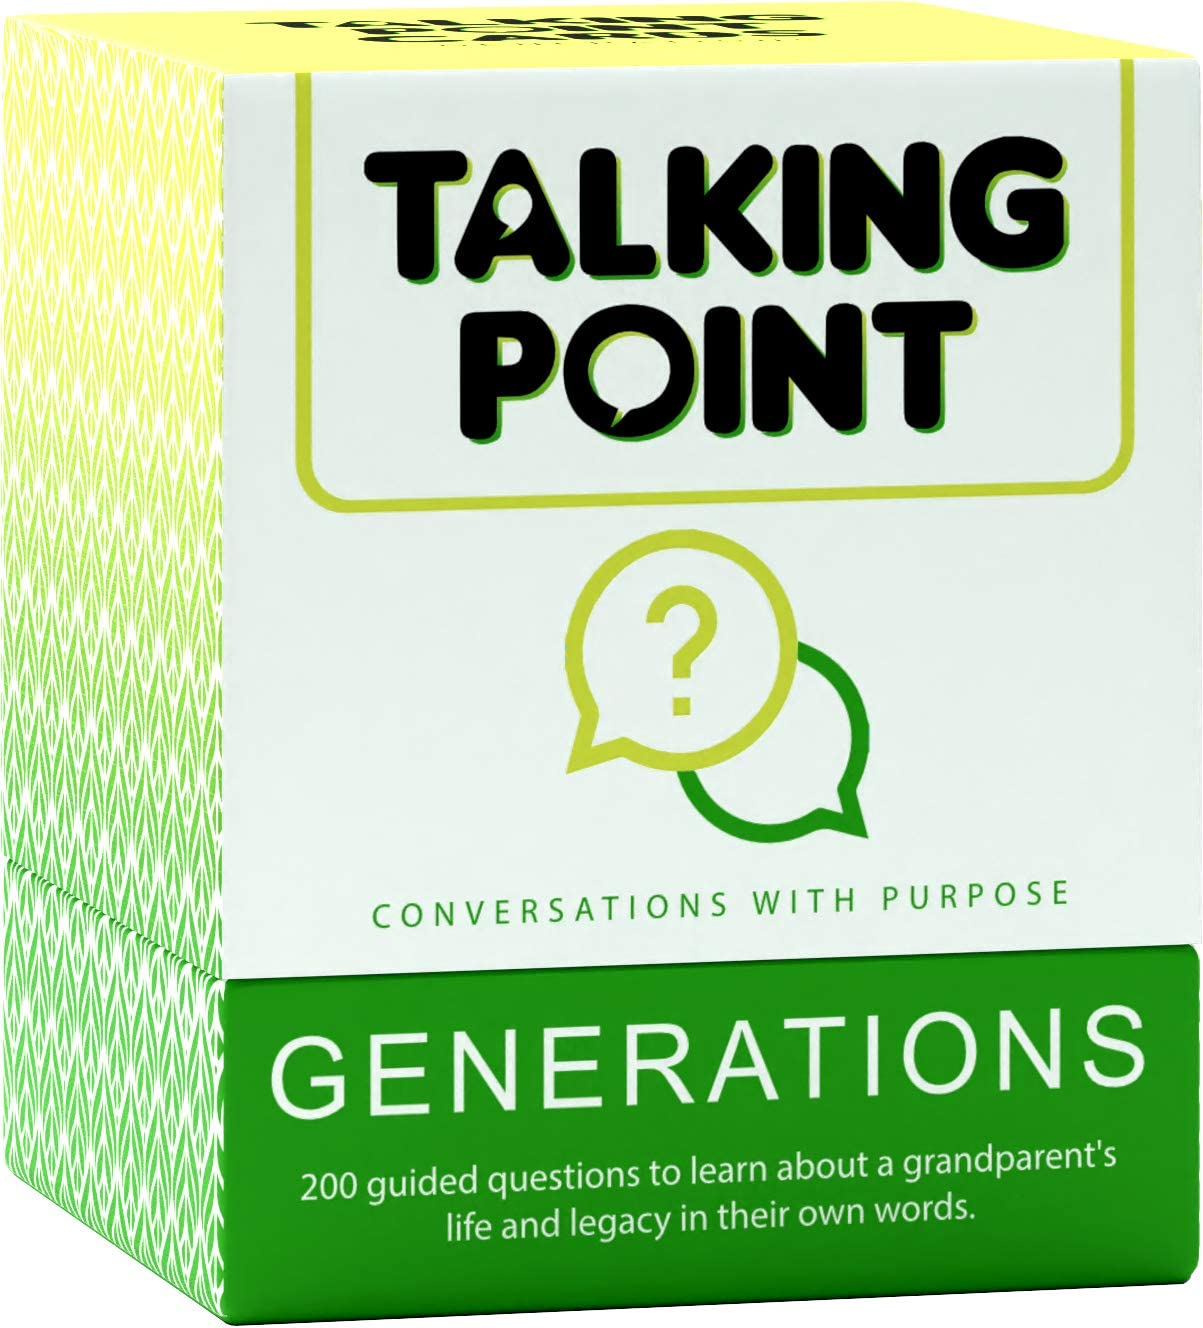 200 INTERGENERATIONAL Conversation Starters for Children to Parents and Grandparents. Learn Who Grandma & Grandpa Really are in Their Own Words with Thoughtful, Meaningful & Fun Question Cards Gift